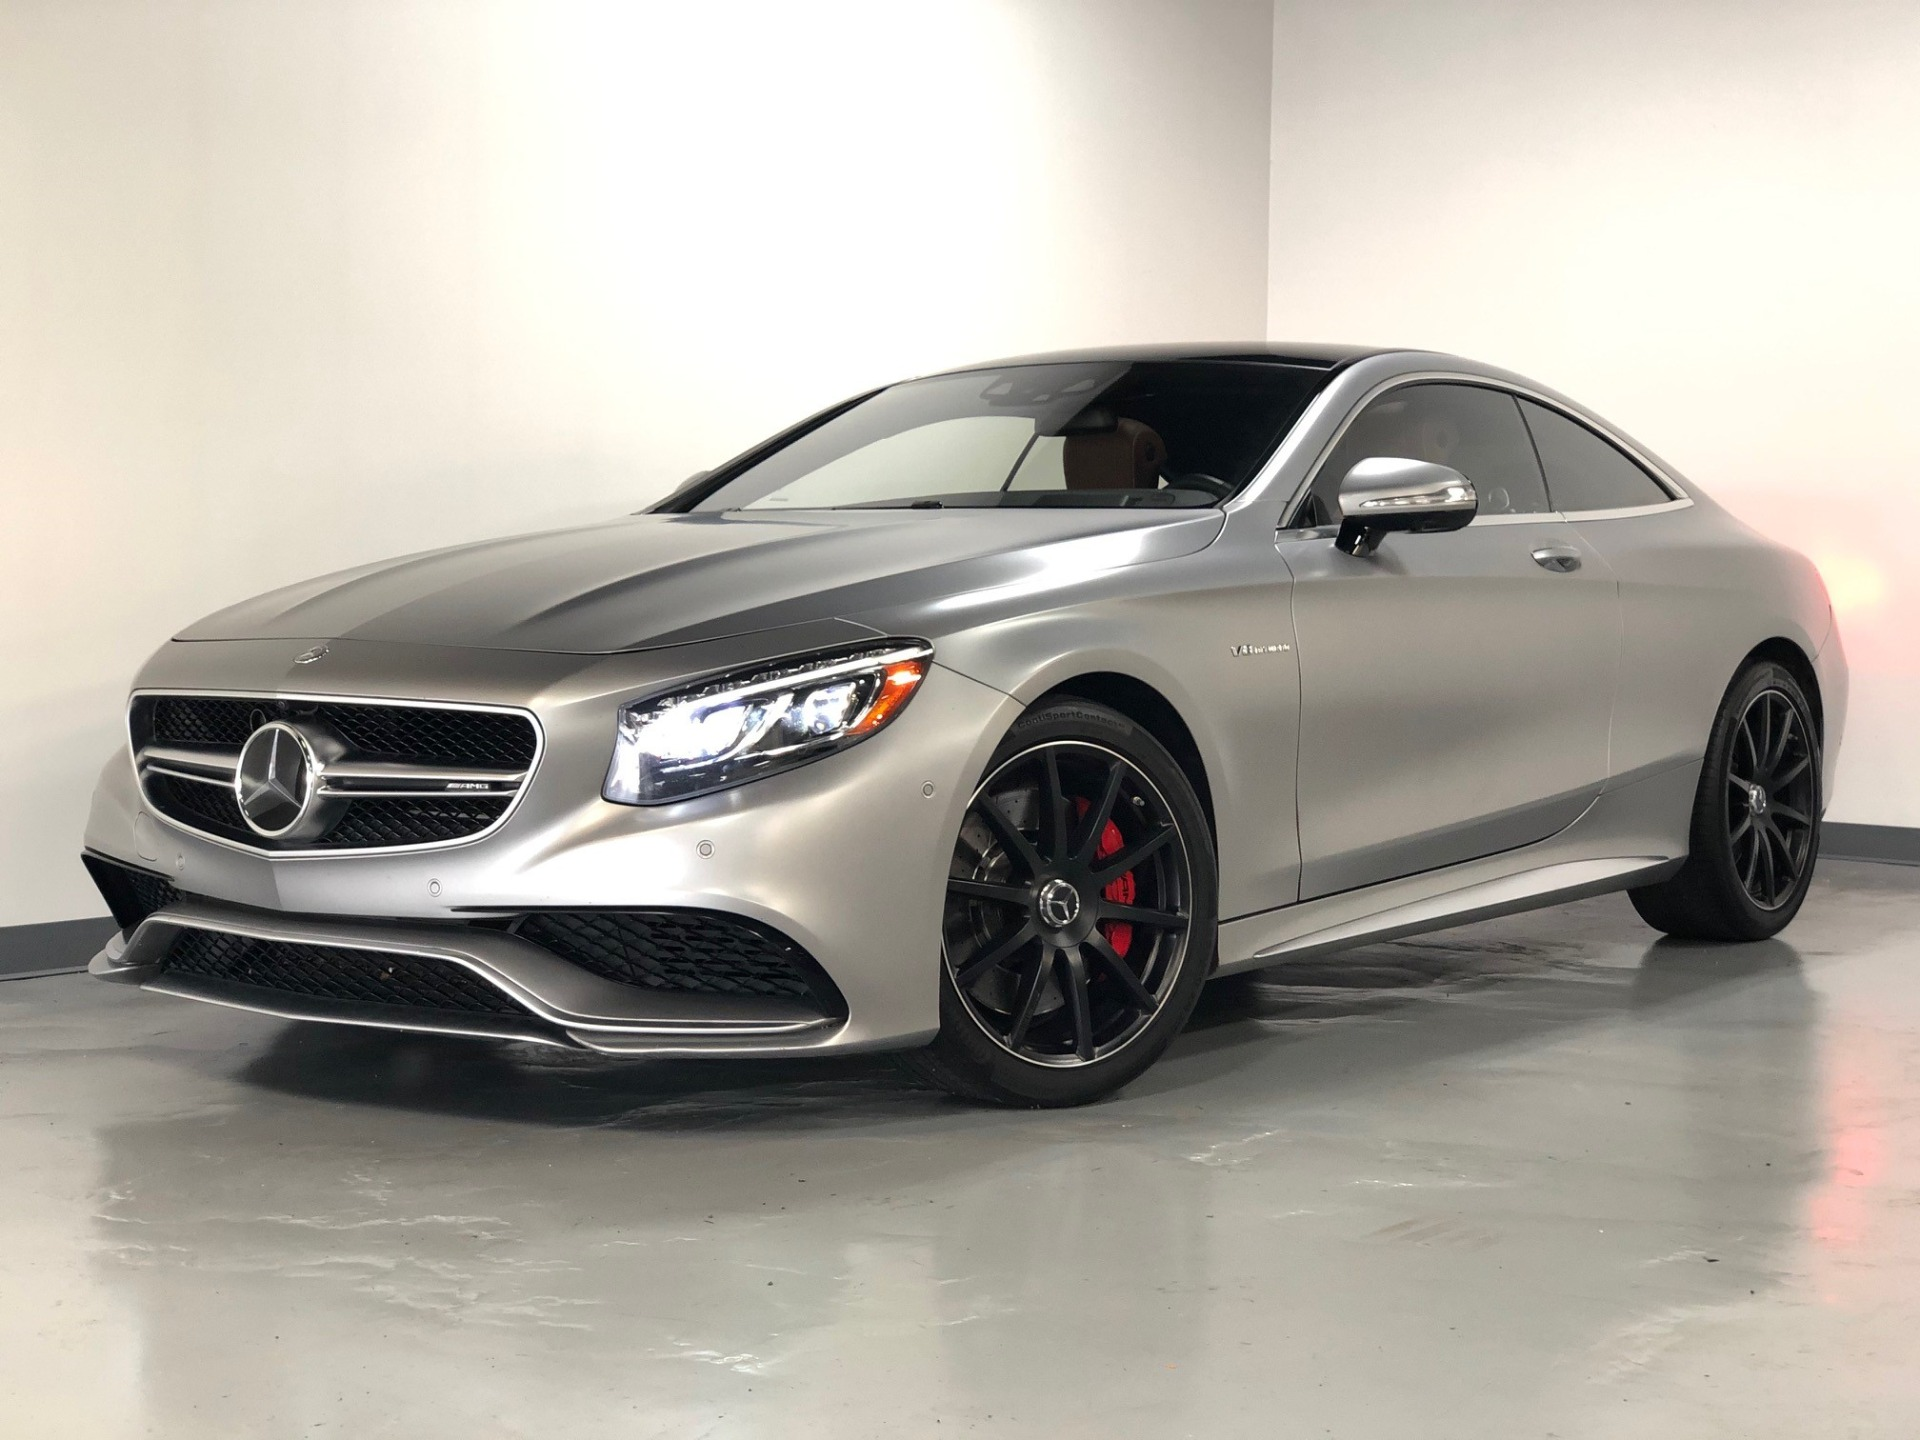 Used 2015 Designo Magno Alanite Grey Mercedes Benz S Class S63 Amg Coupe Awd S 63 Amg For Sale Sold Prime Motorz Stock 2851